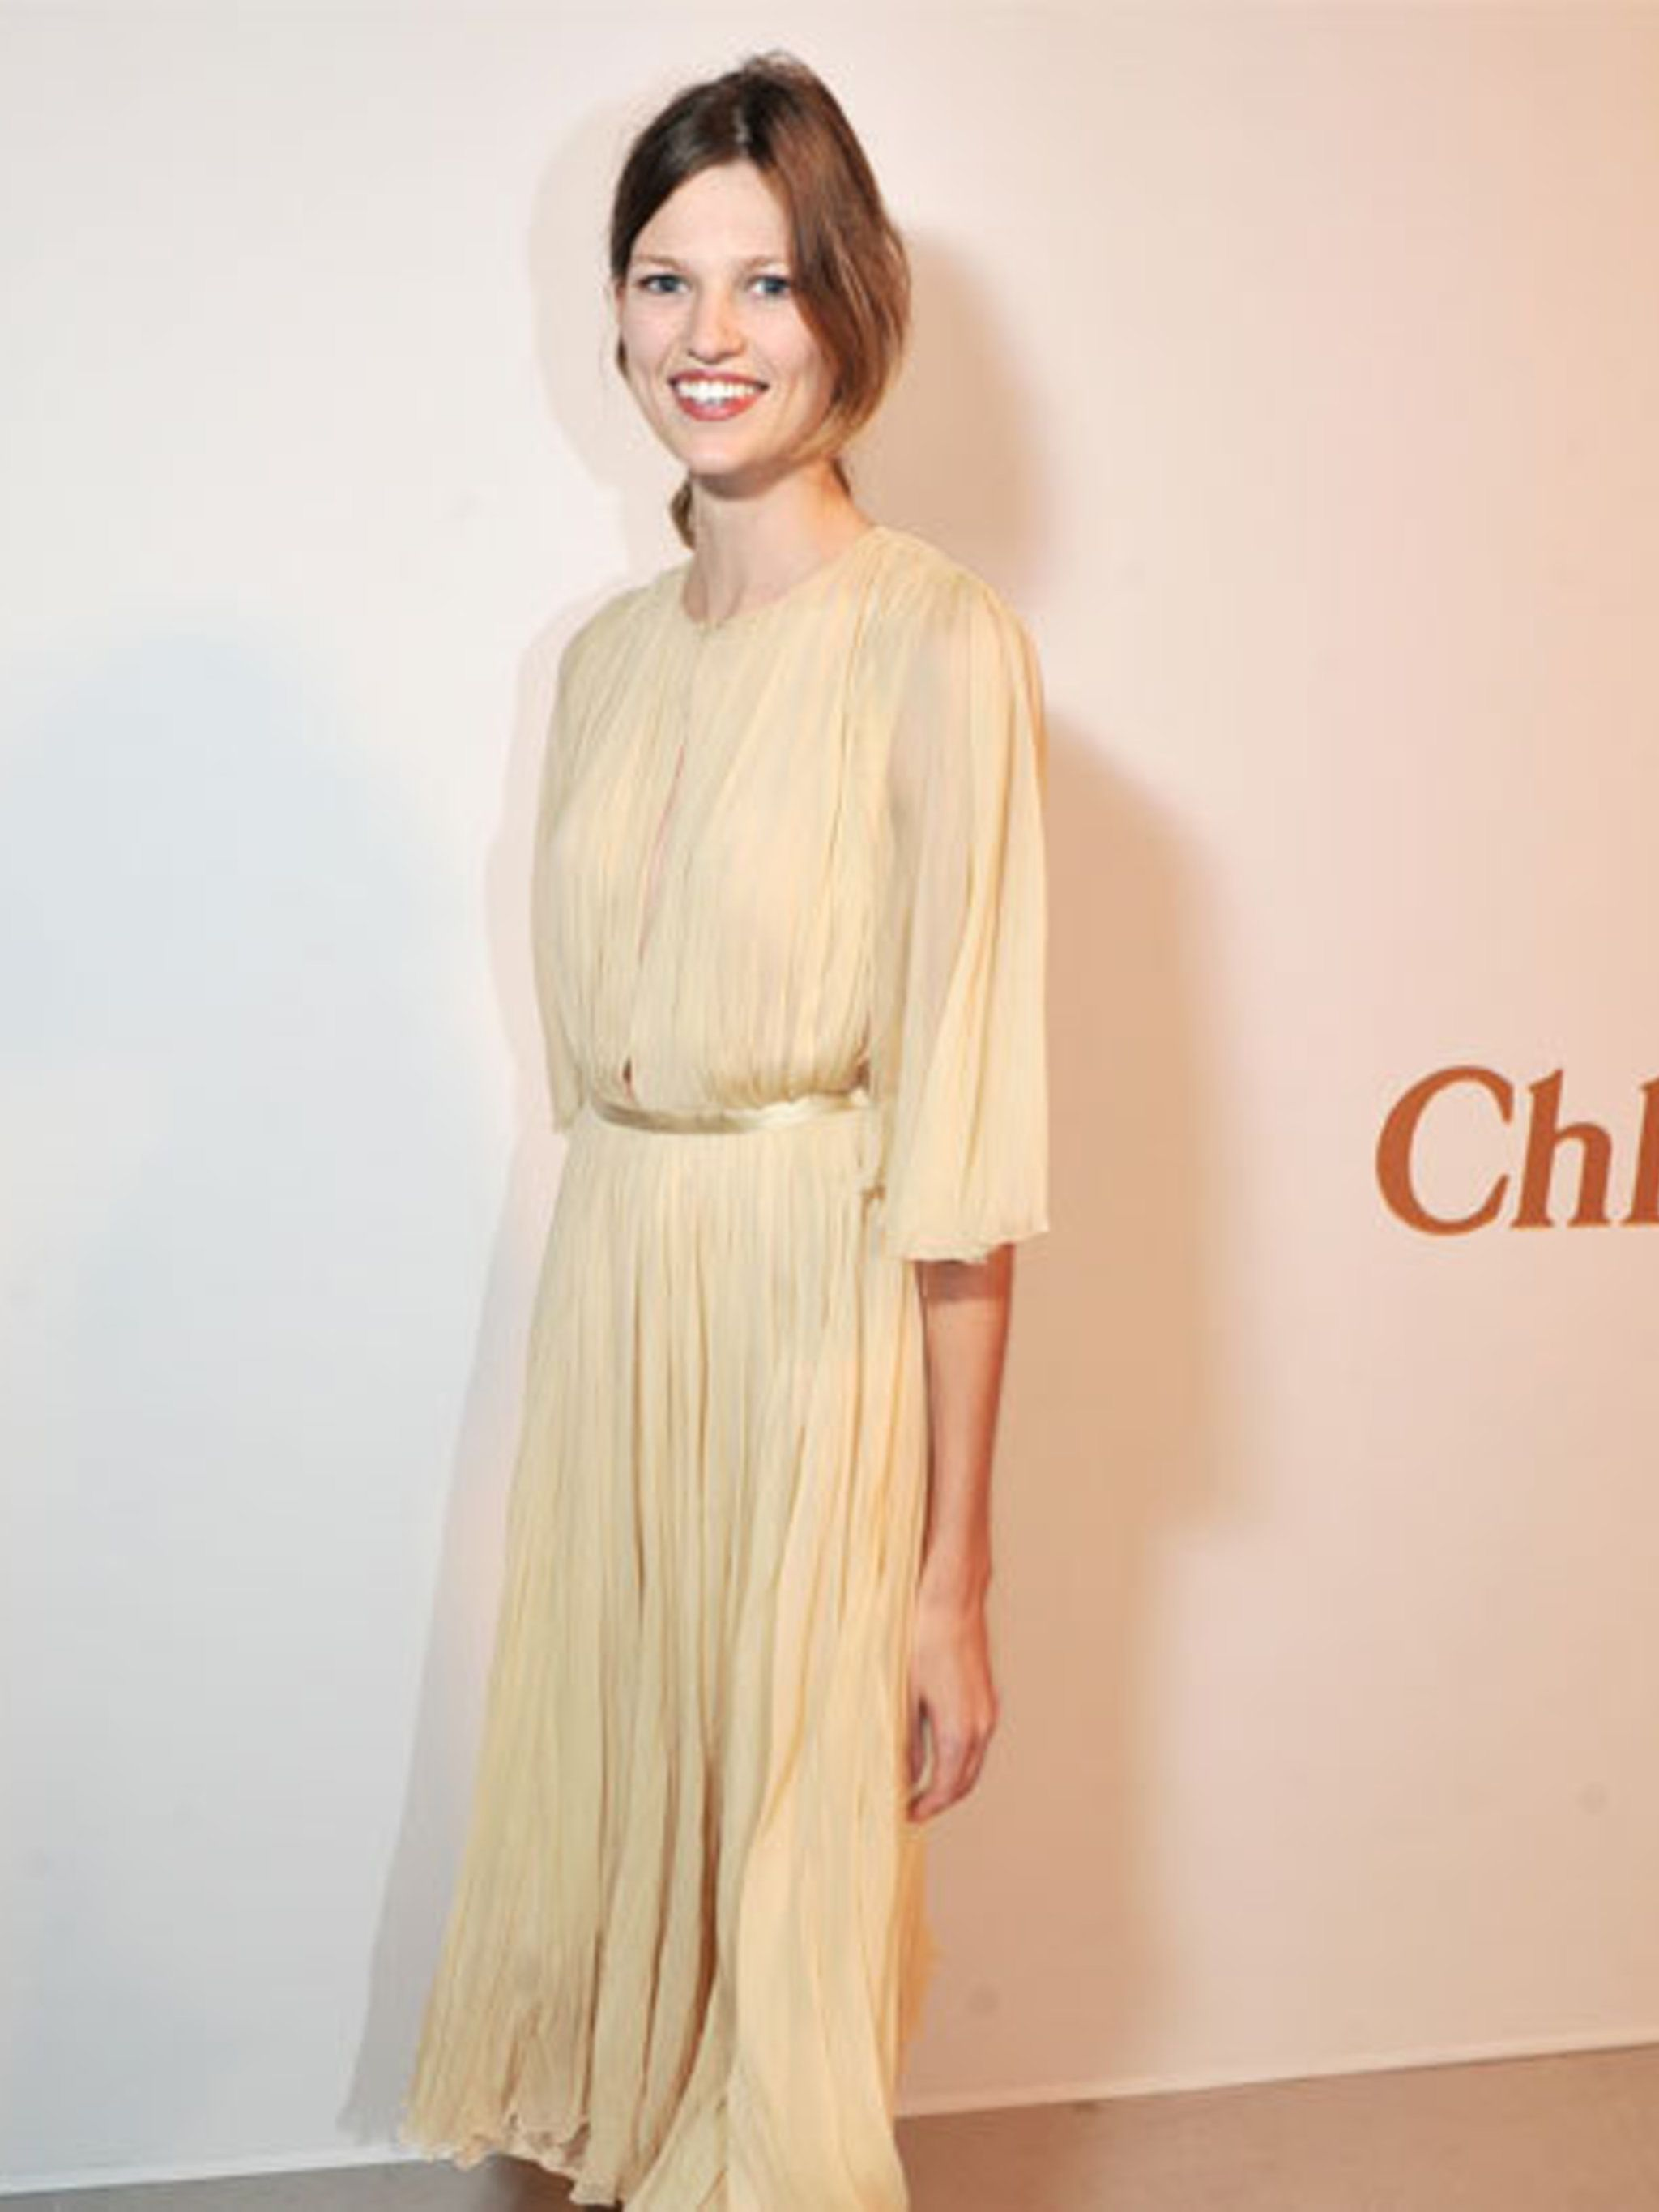 <p>Bette Franke at Chloé's 60th anniversary party at the Palais de Tokyo in Paris</p>